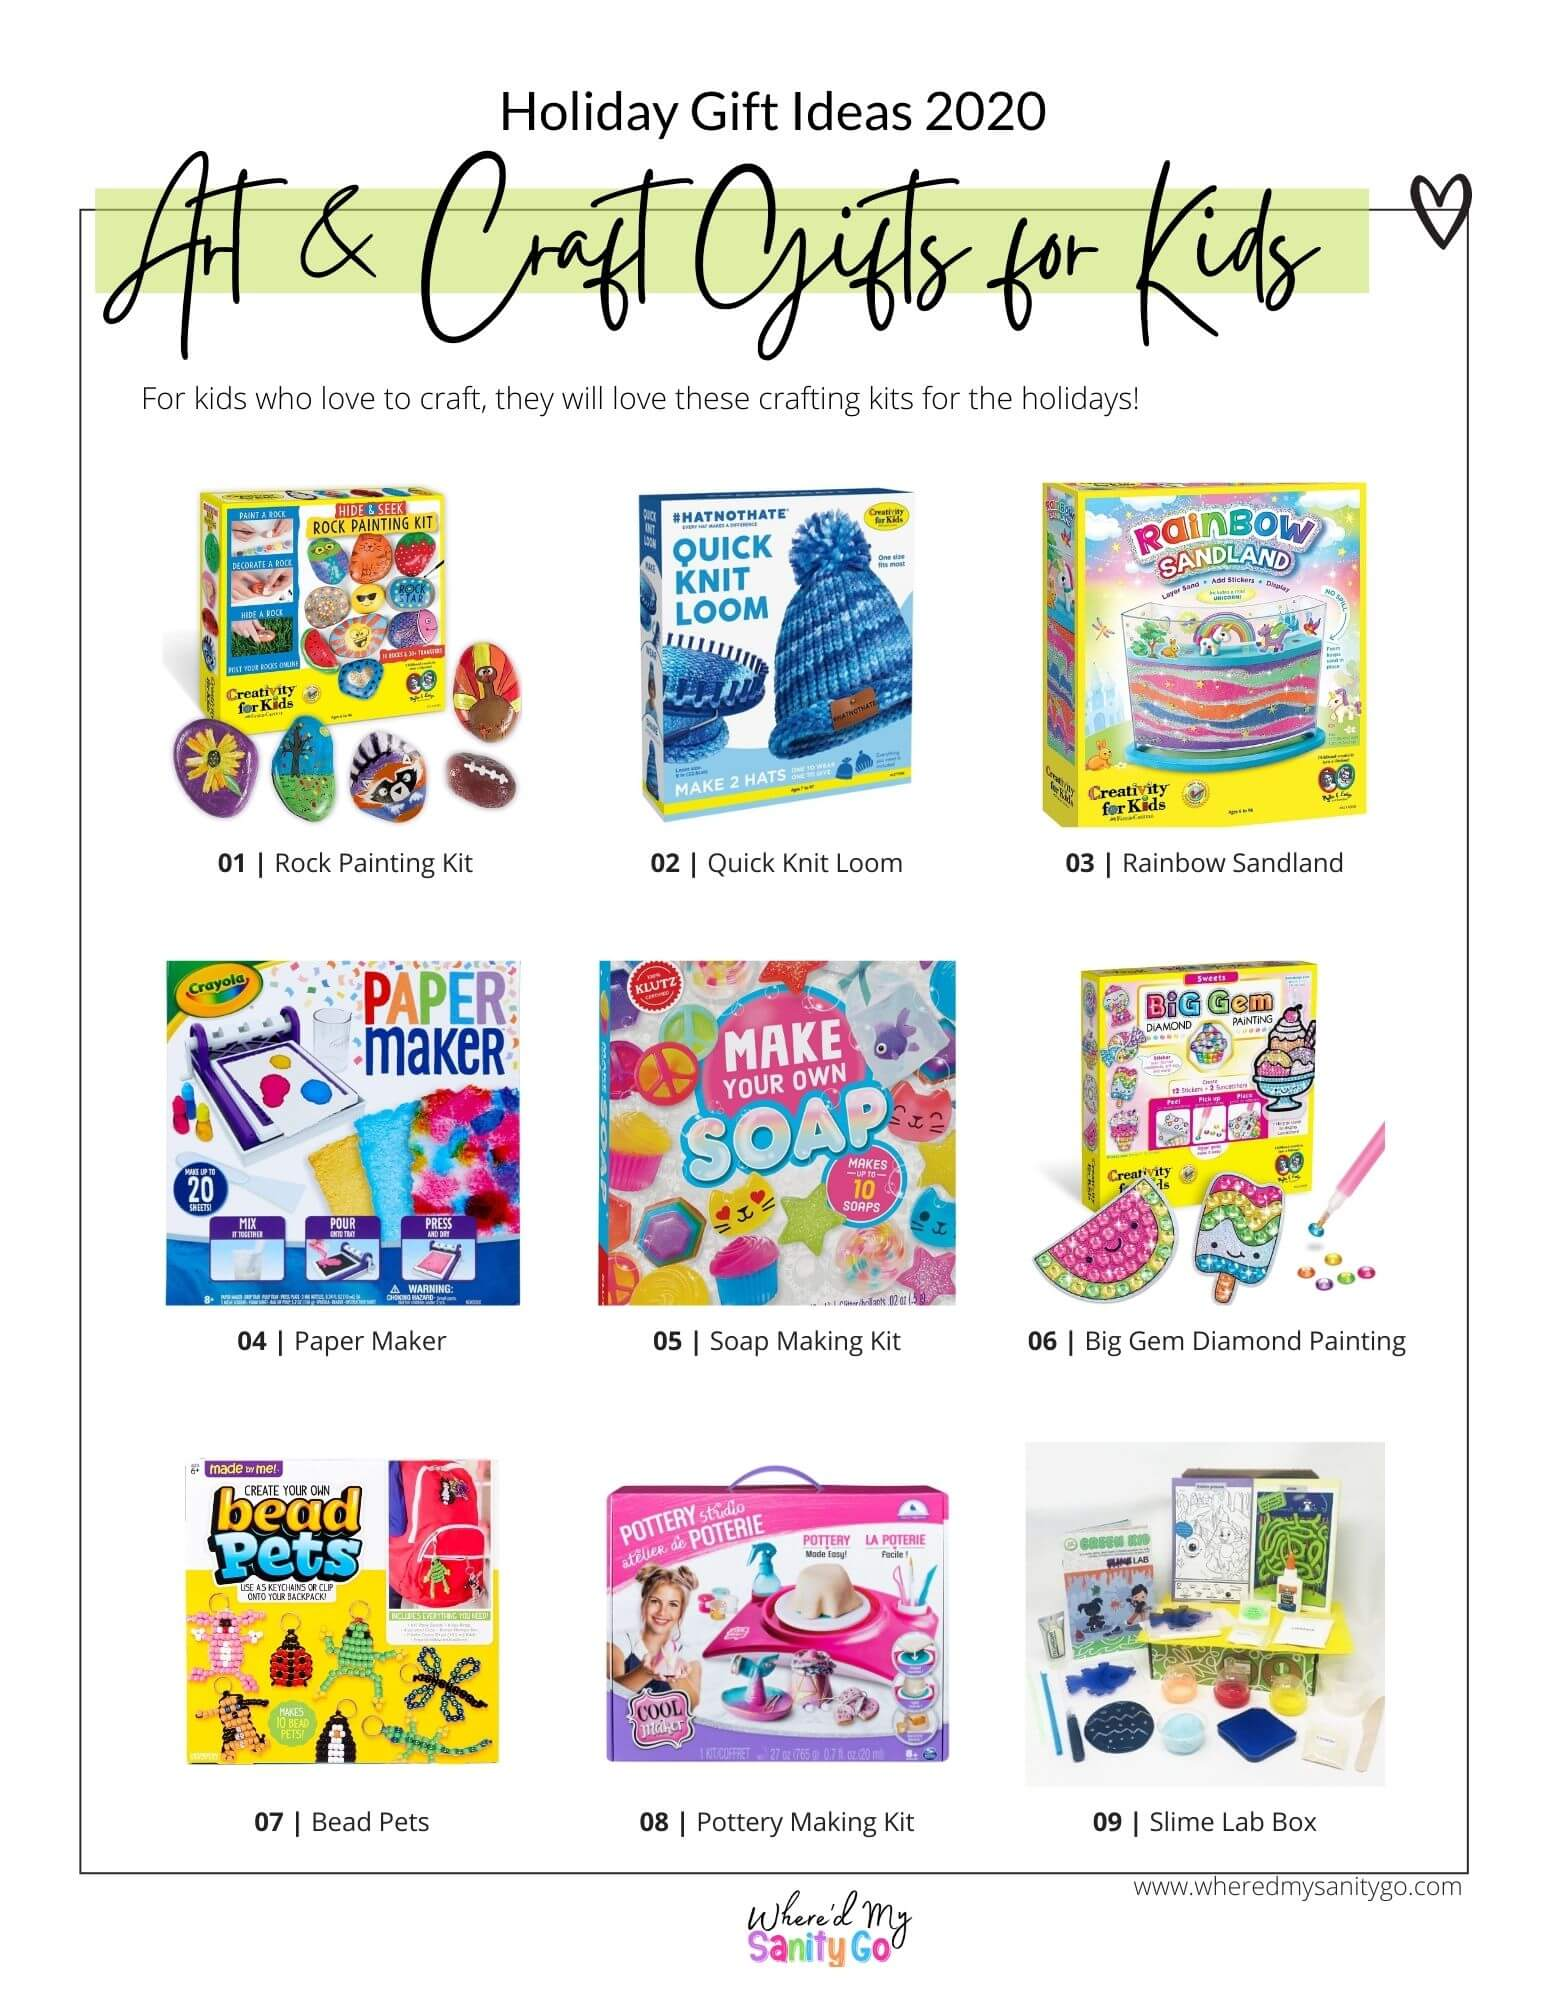 Best Craft Kits for Kids Holiday Gift Guide 2020